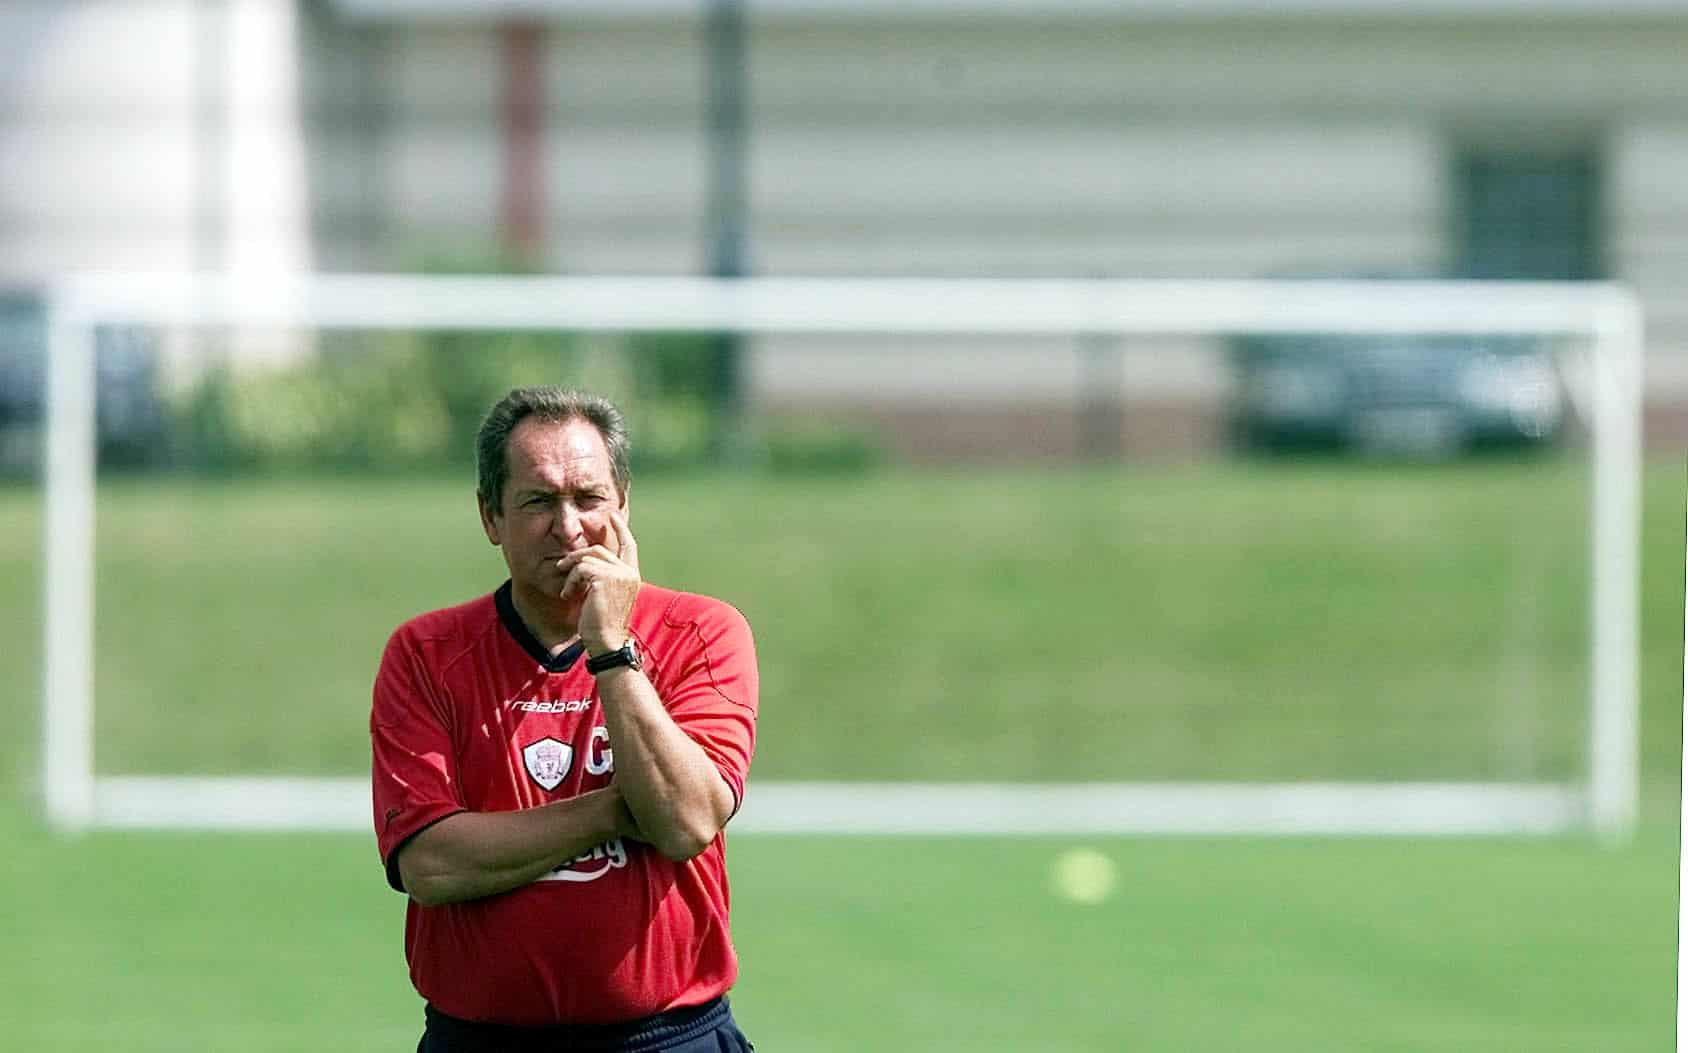 Liverpool's Gerard Houllier takes part in an open training session at the club's Academy training ground. (2001) ( Gareth Copley/PA Archive/PA Images)